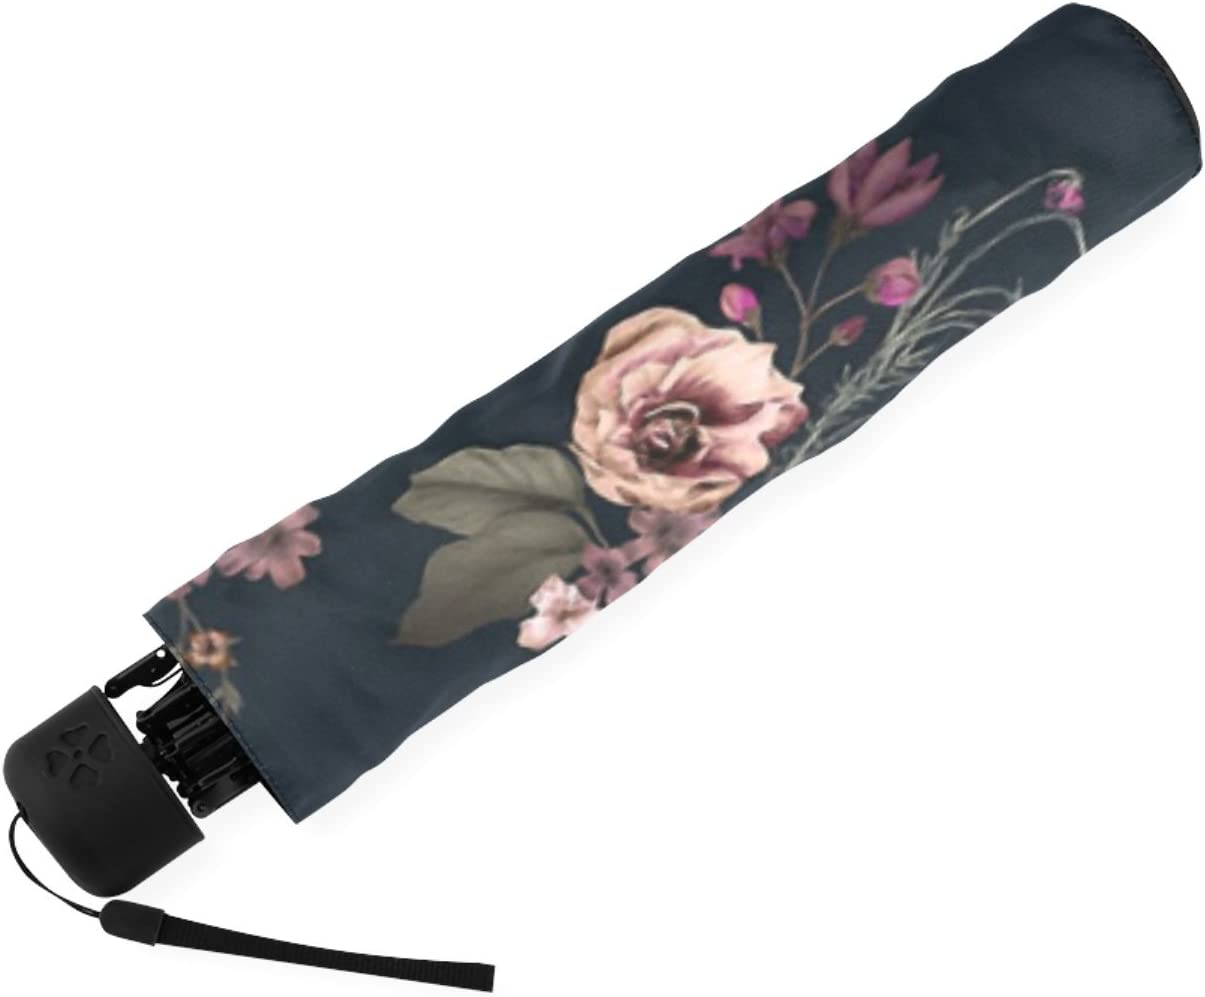 Personalized Japanese Boho Floral Foldable Raining Umbrella